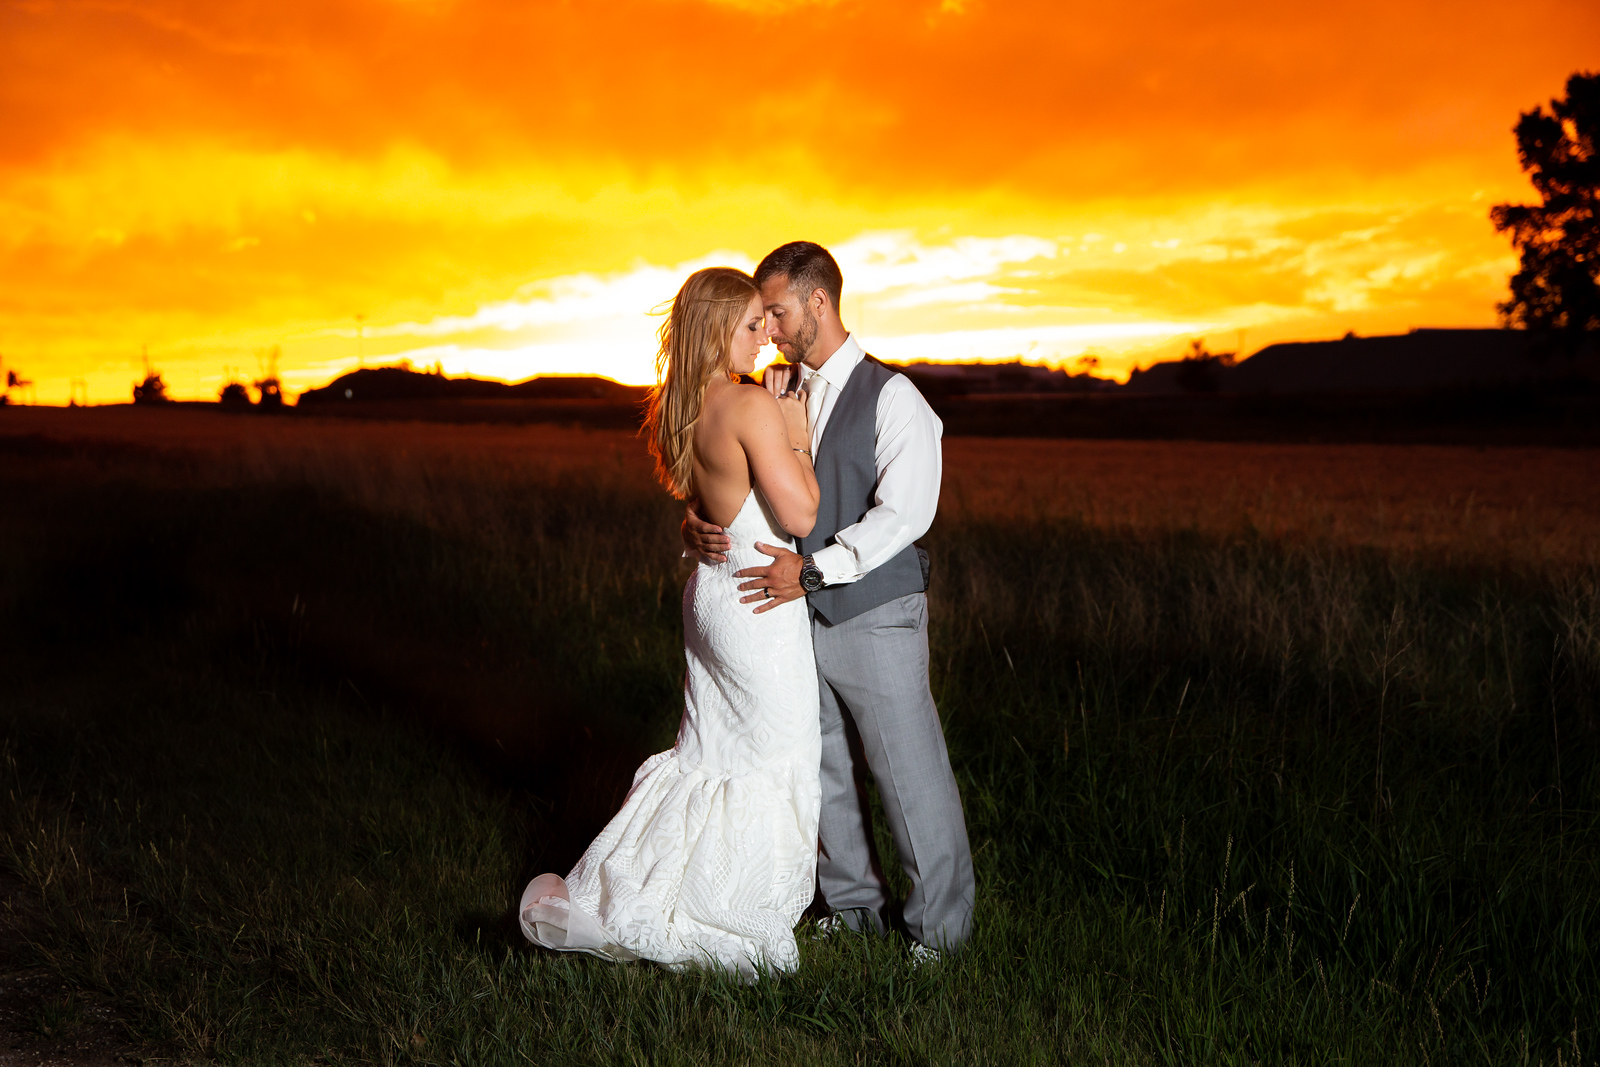 bride and groom share an embrace at sunset